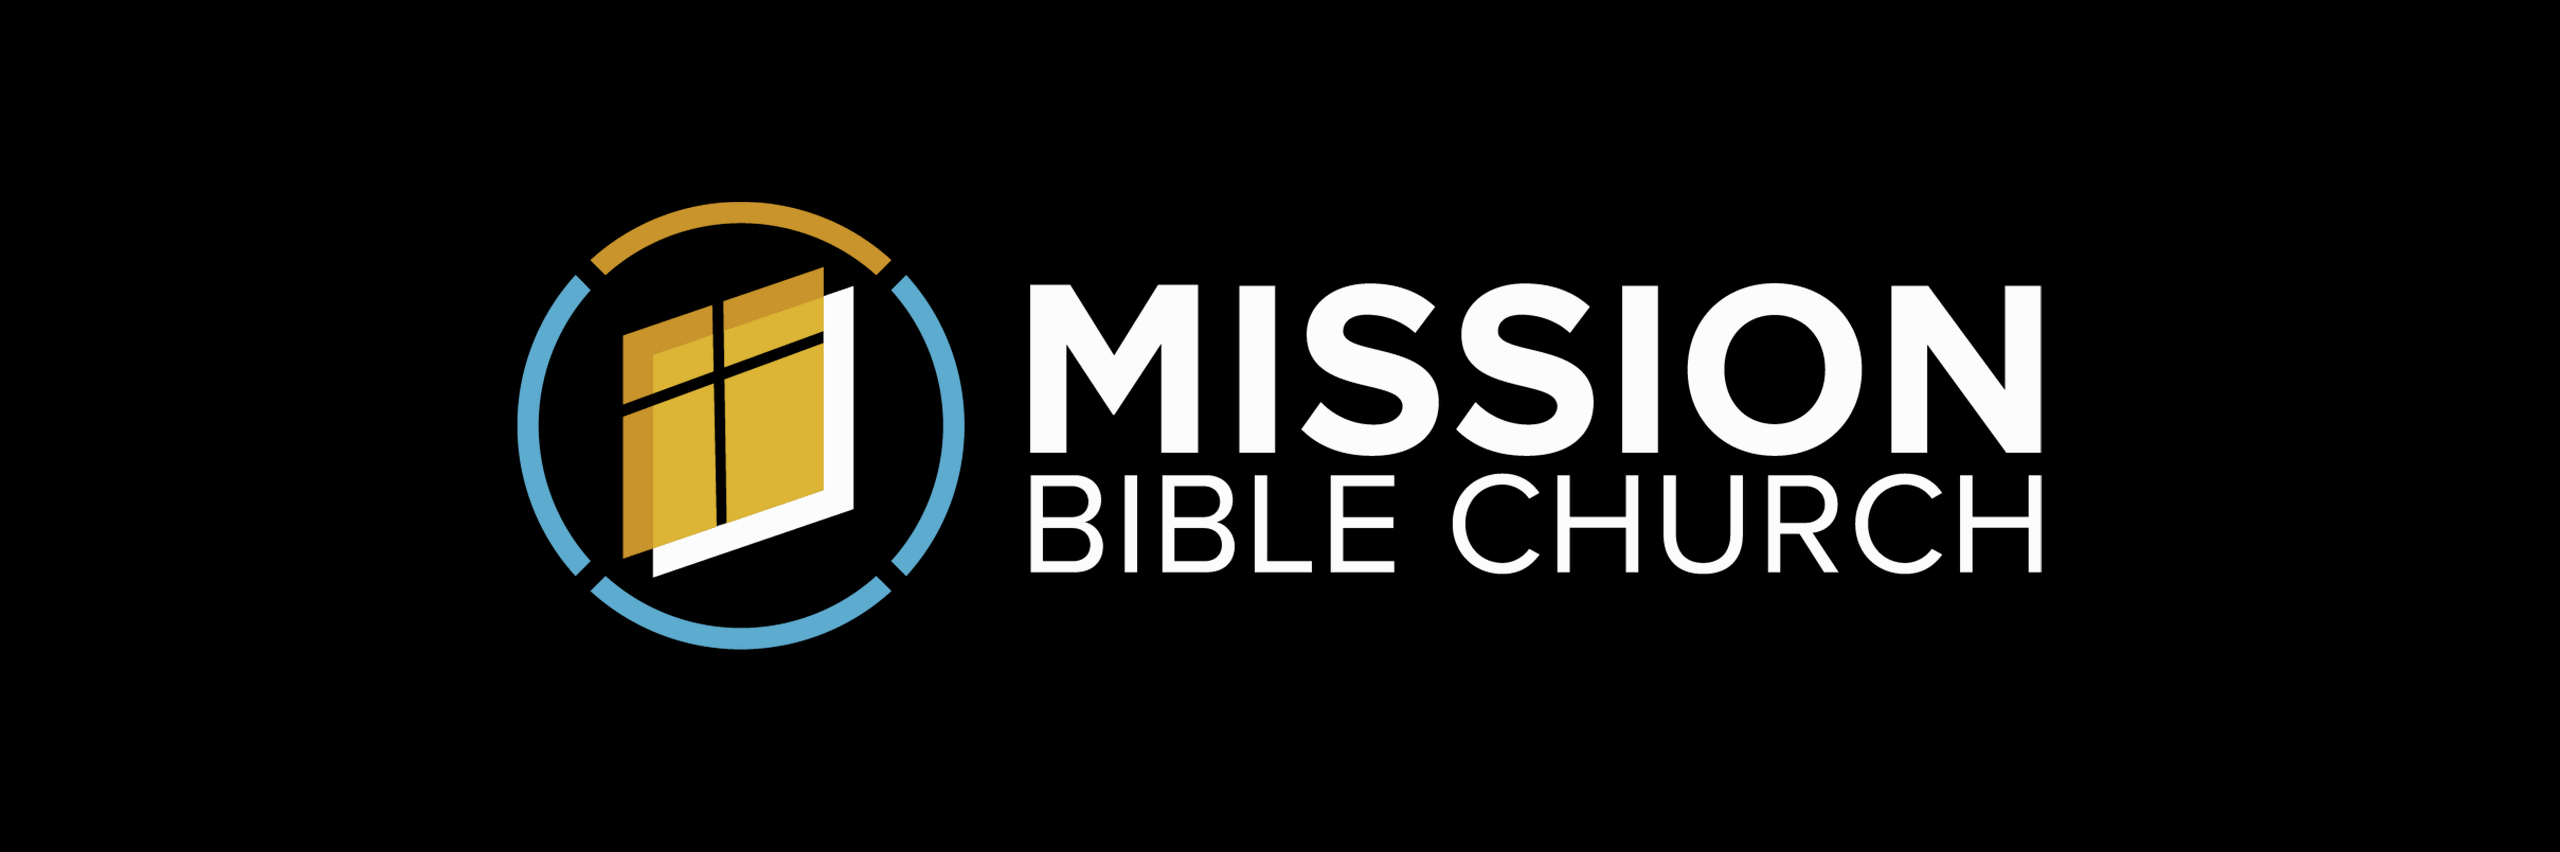 Mission Bible Church Tustin